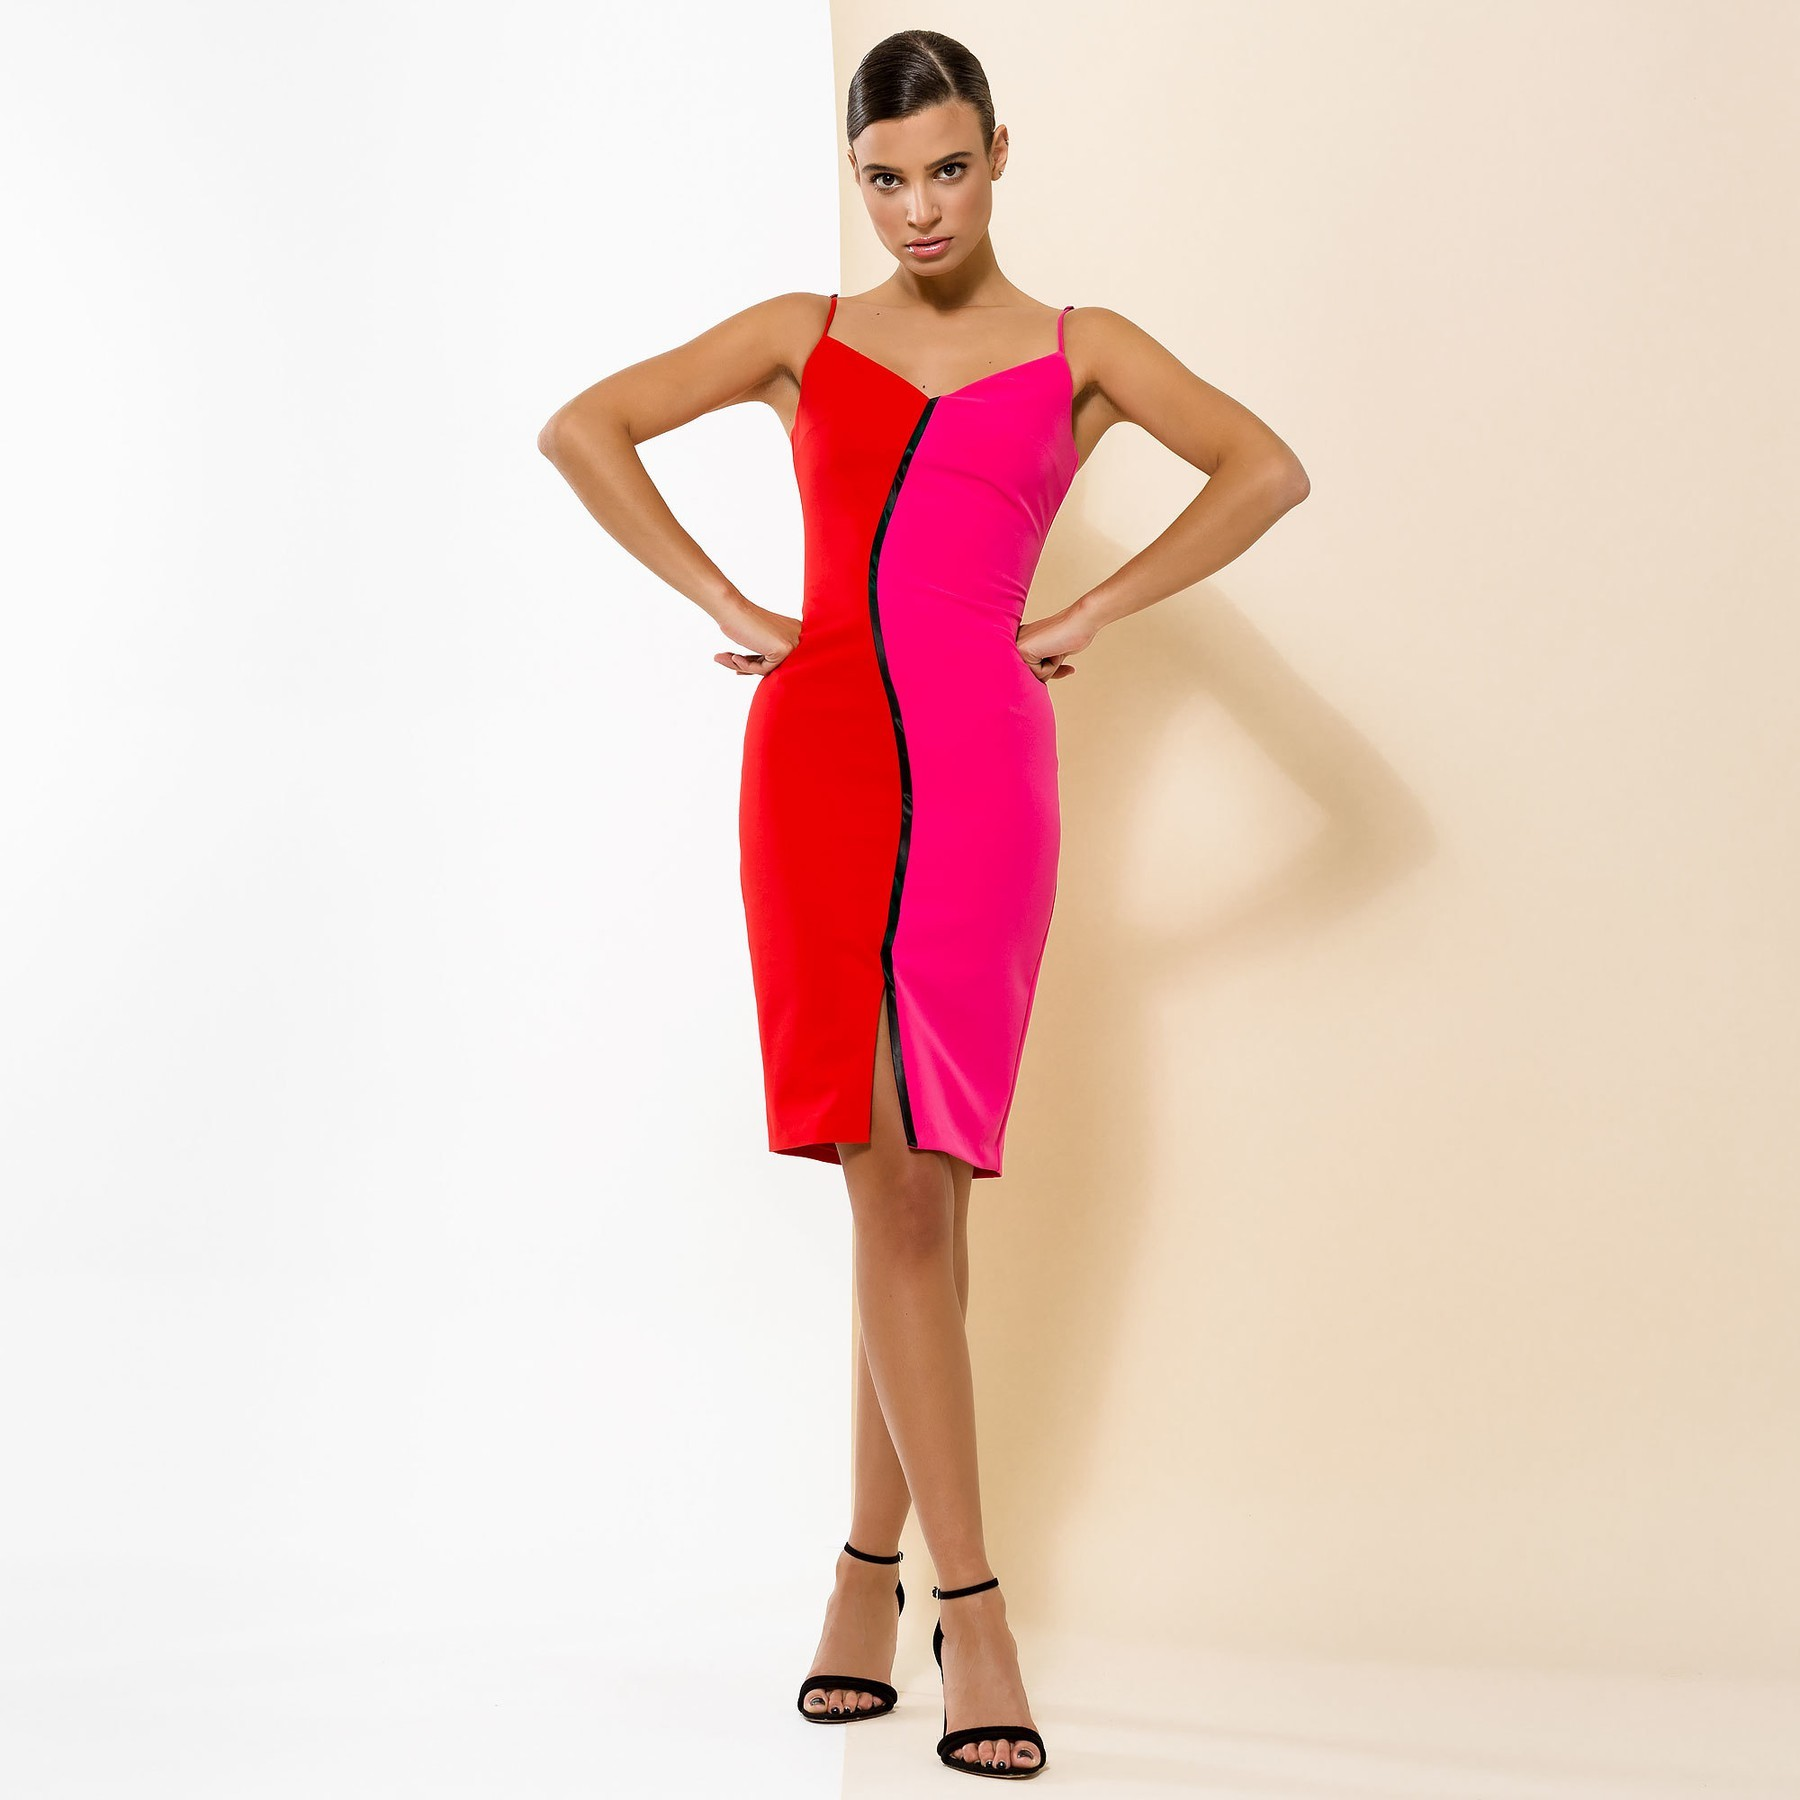 Bodycon dress in Red and Pink with Black Trim ACCDR3011